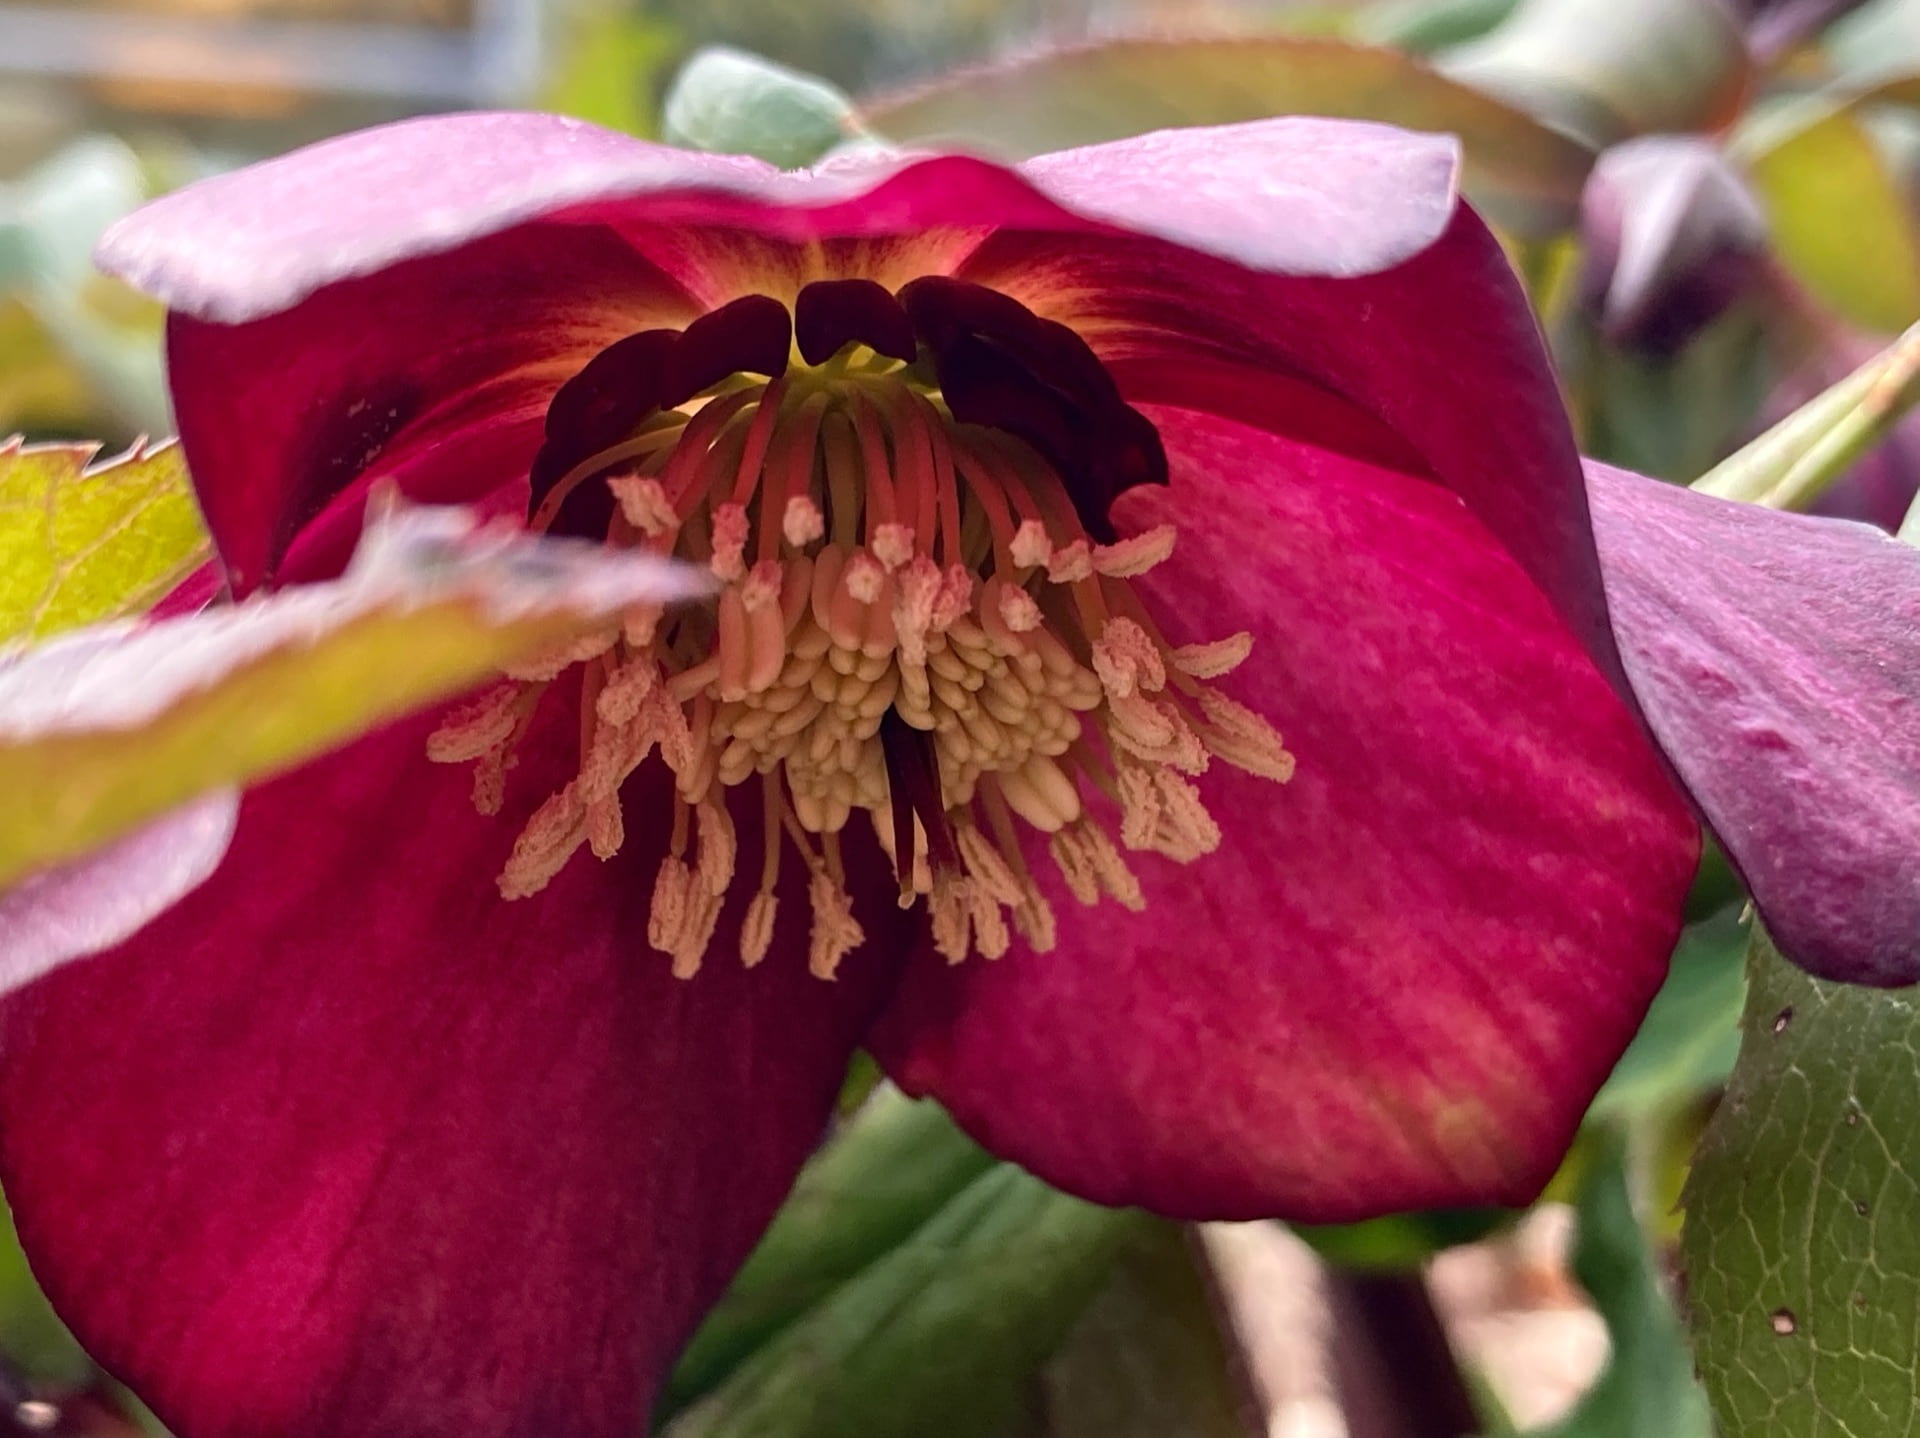 The up-close crimson drama of Helleborus x hybridus.